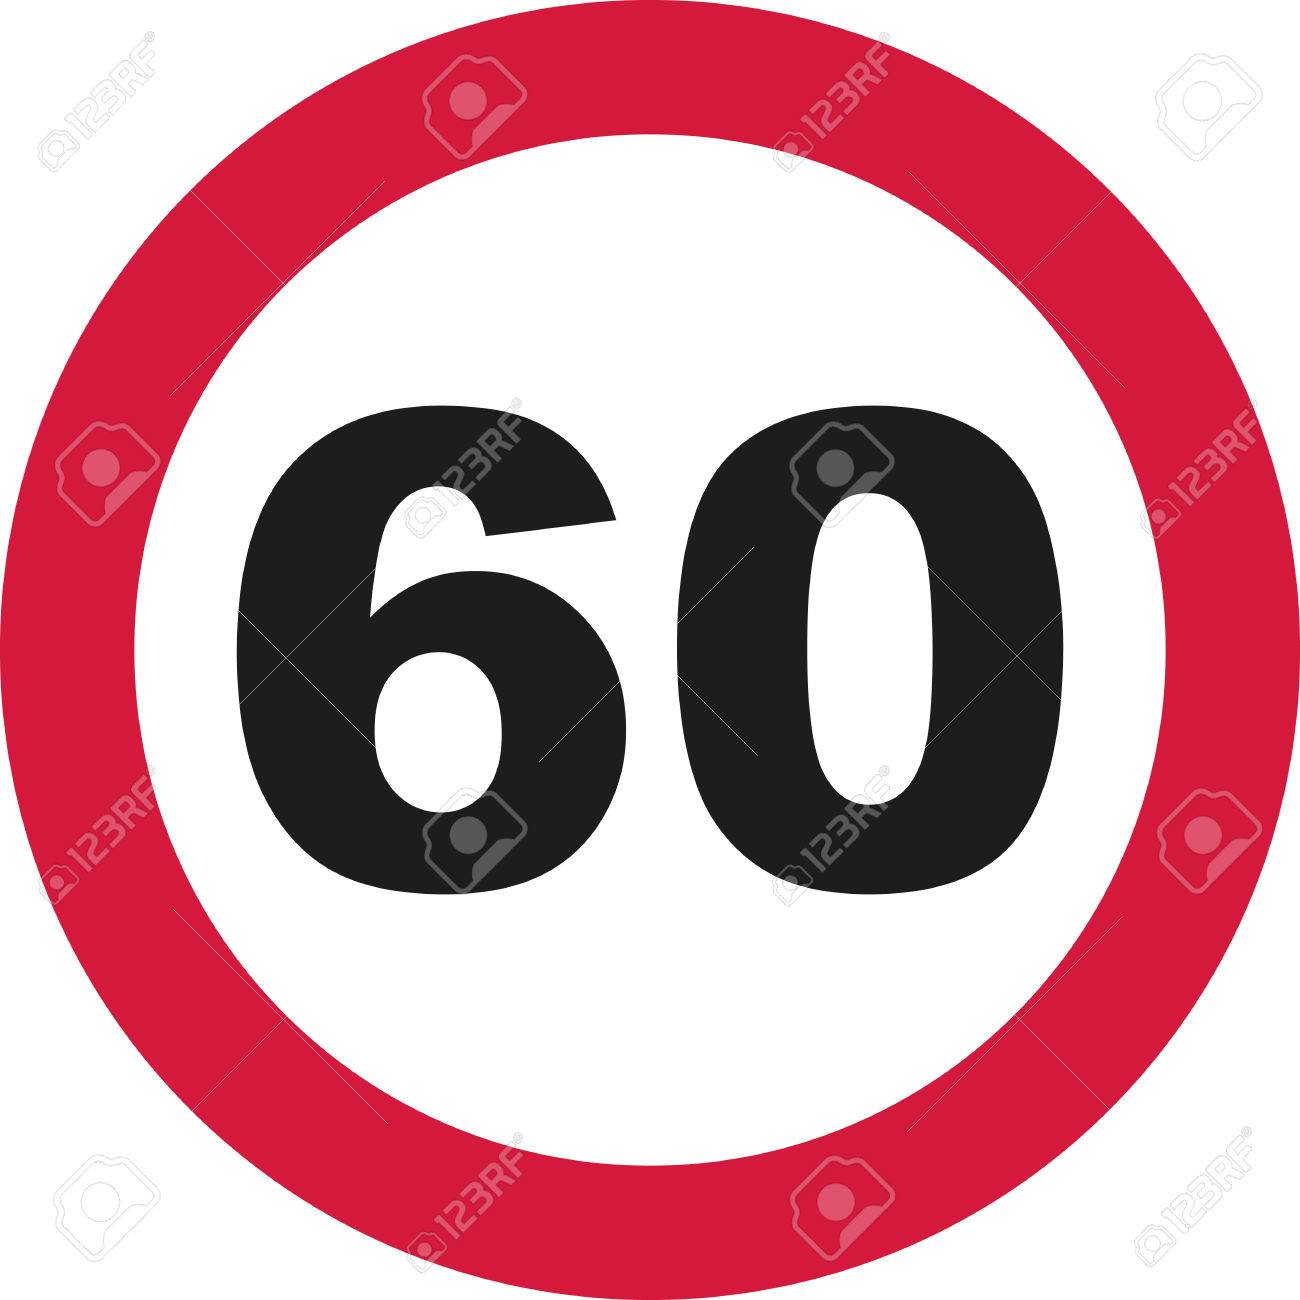 60th birthday traffic sign royalty free cliparts vectors and rh 123rf com 60th birthday clipart free 60th birthday clipart free